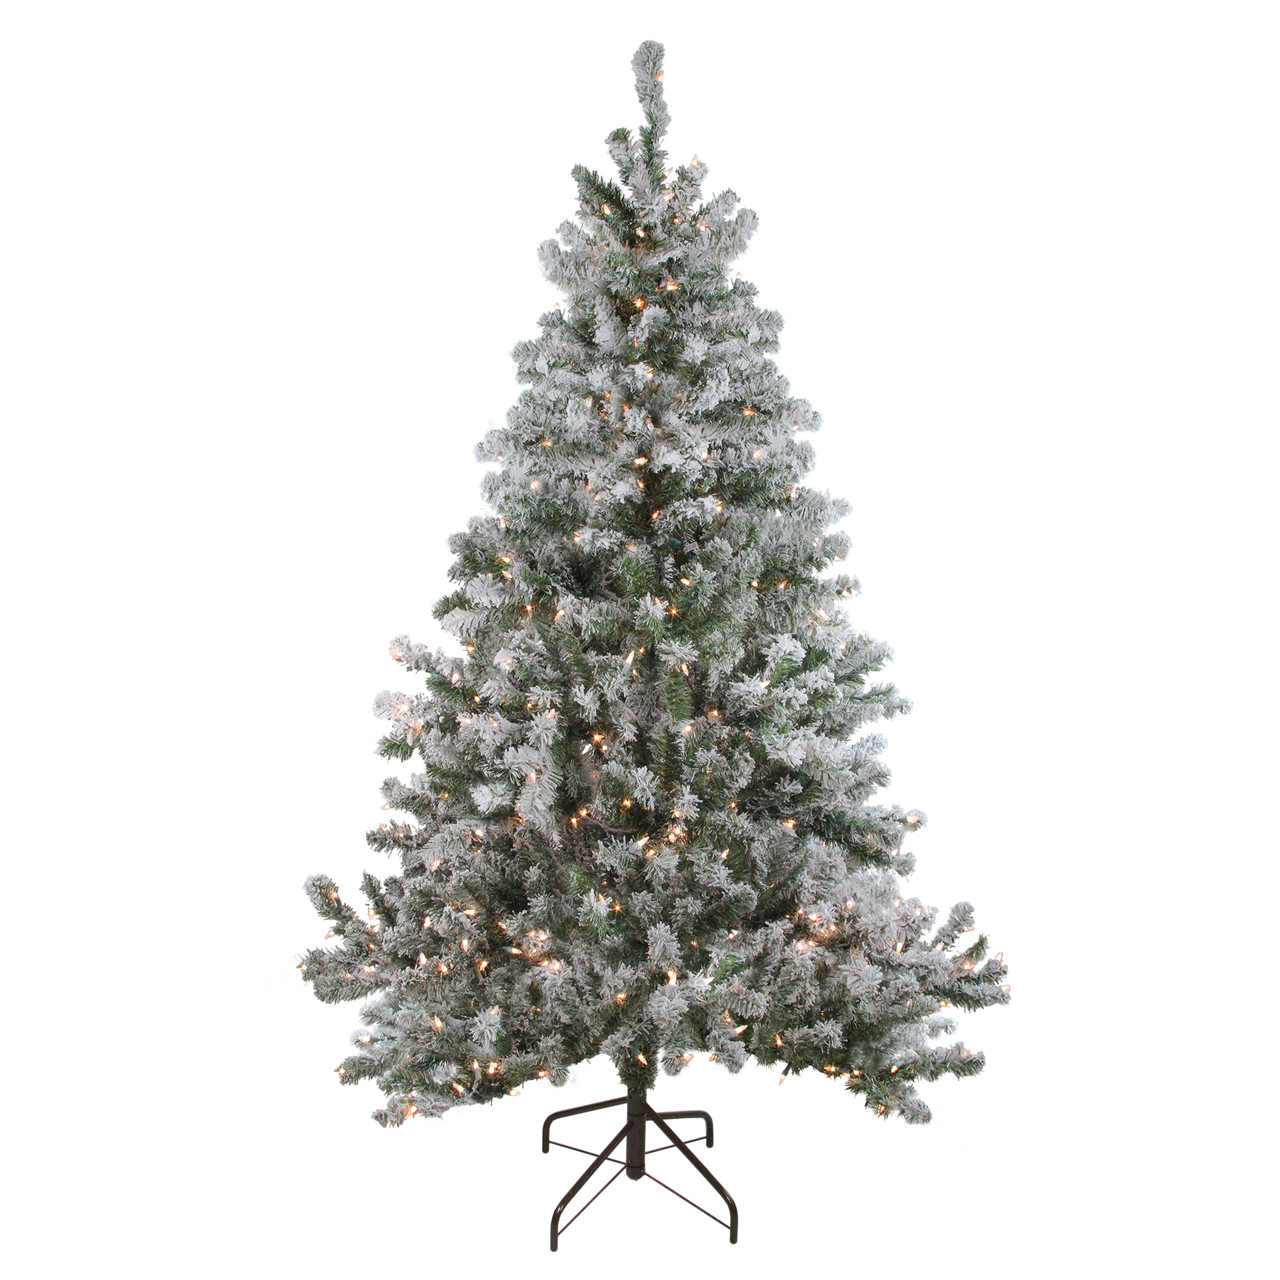 newest fc153 f1c3d 6' Pre-Lit Flocked Balsam Pine Artificial Christmas Tree - Clear Lights -  32913332